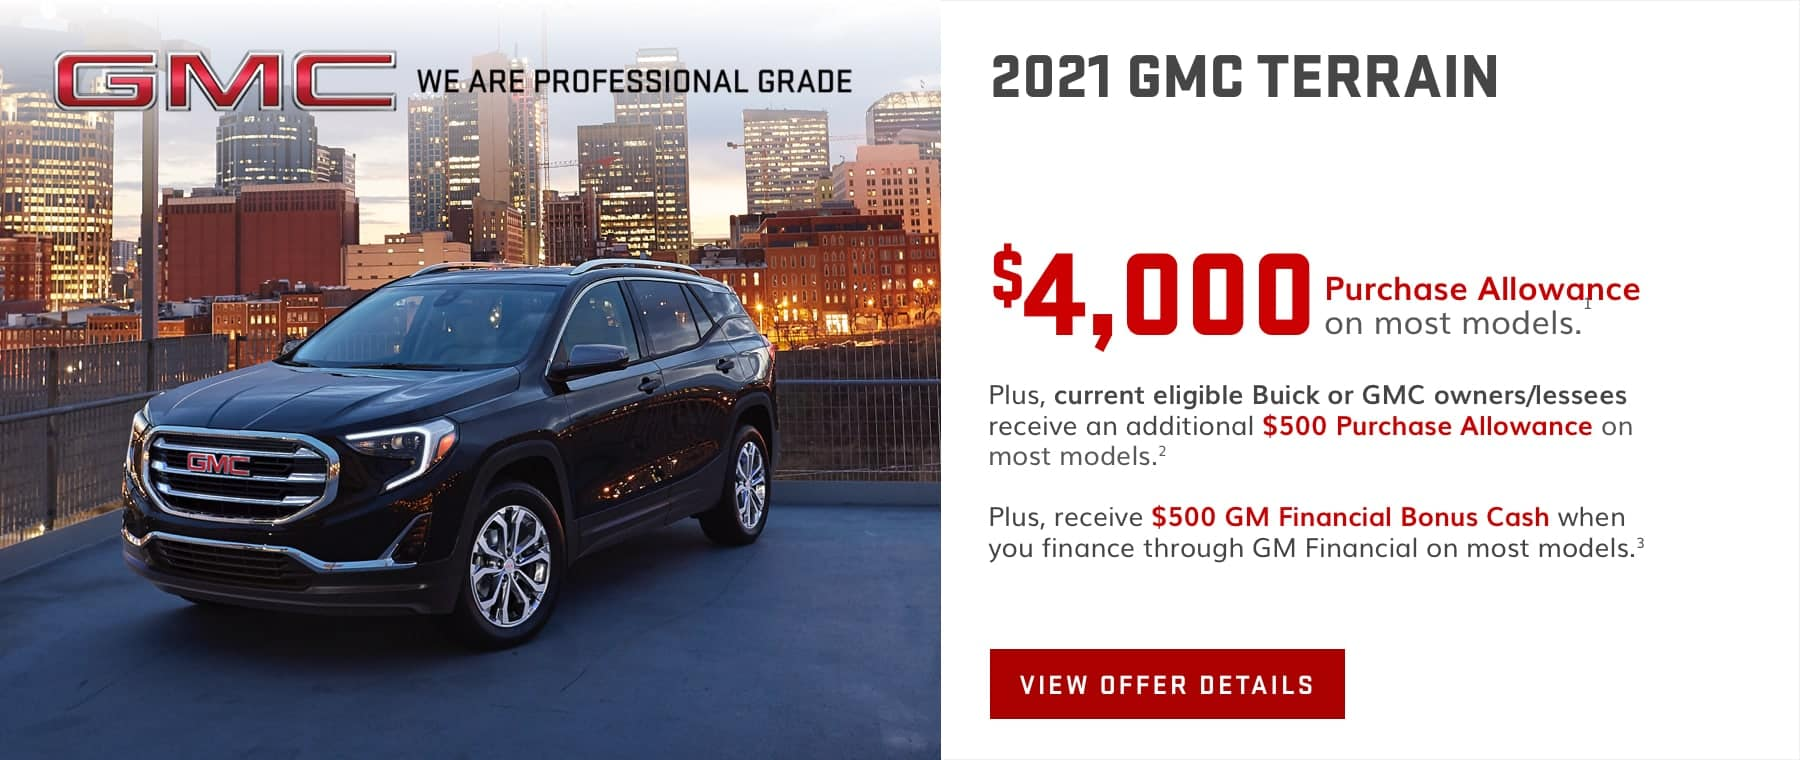 $4,000 Purchase Allowance on most models.1 Plus, current eligible Buick or GMC owners/lessees receive an additional $500 Purchase Allowance on most models.2 Plus, receive $500 GM Financial Bonus Cash when you finance through GM Financial on most models.3